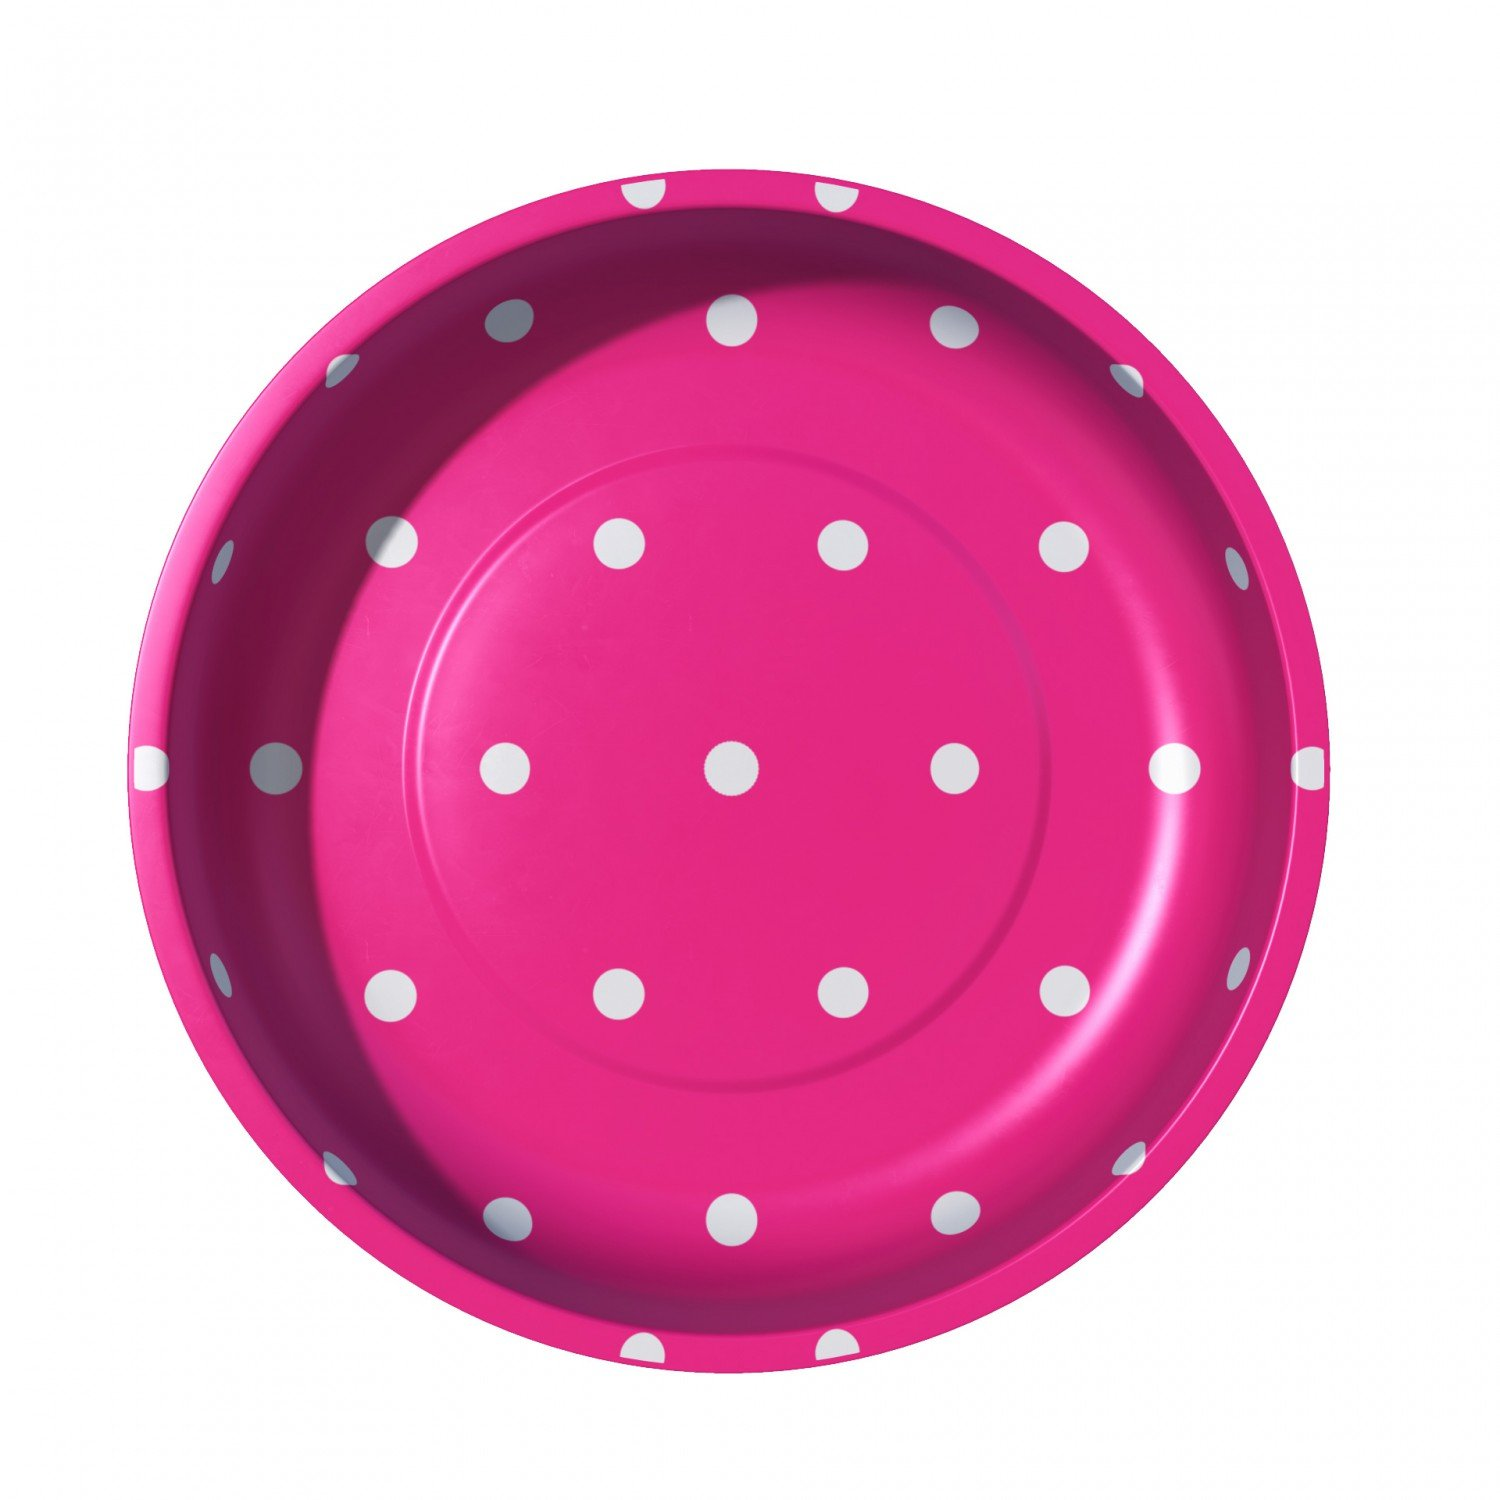 Sew Together Magnetic Pin Bowl Polka Dots Hot Pink